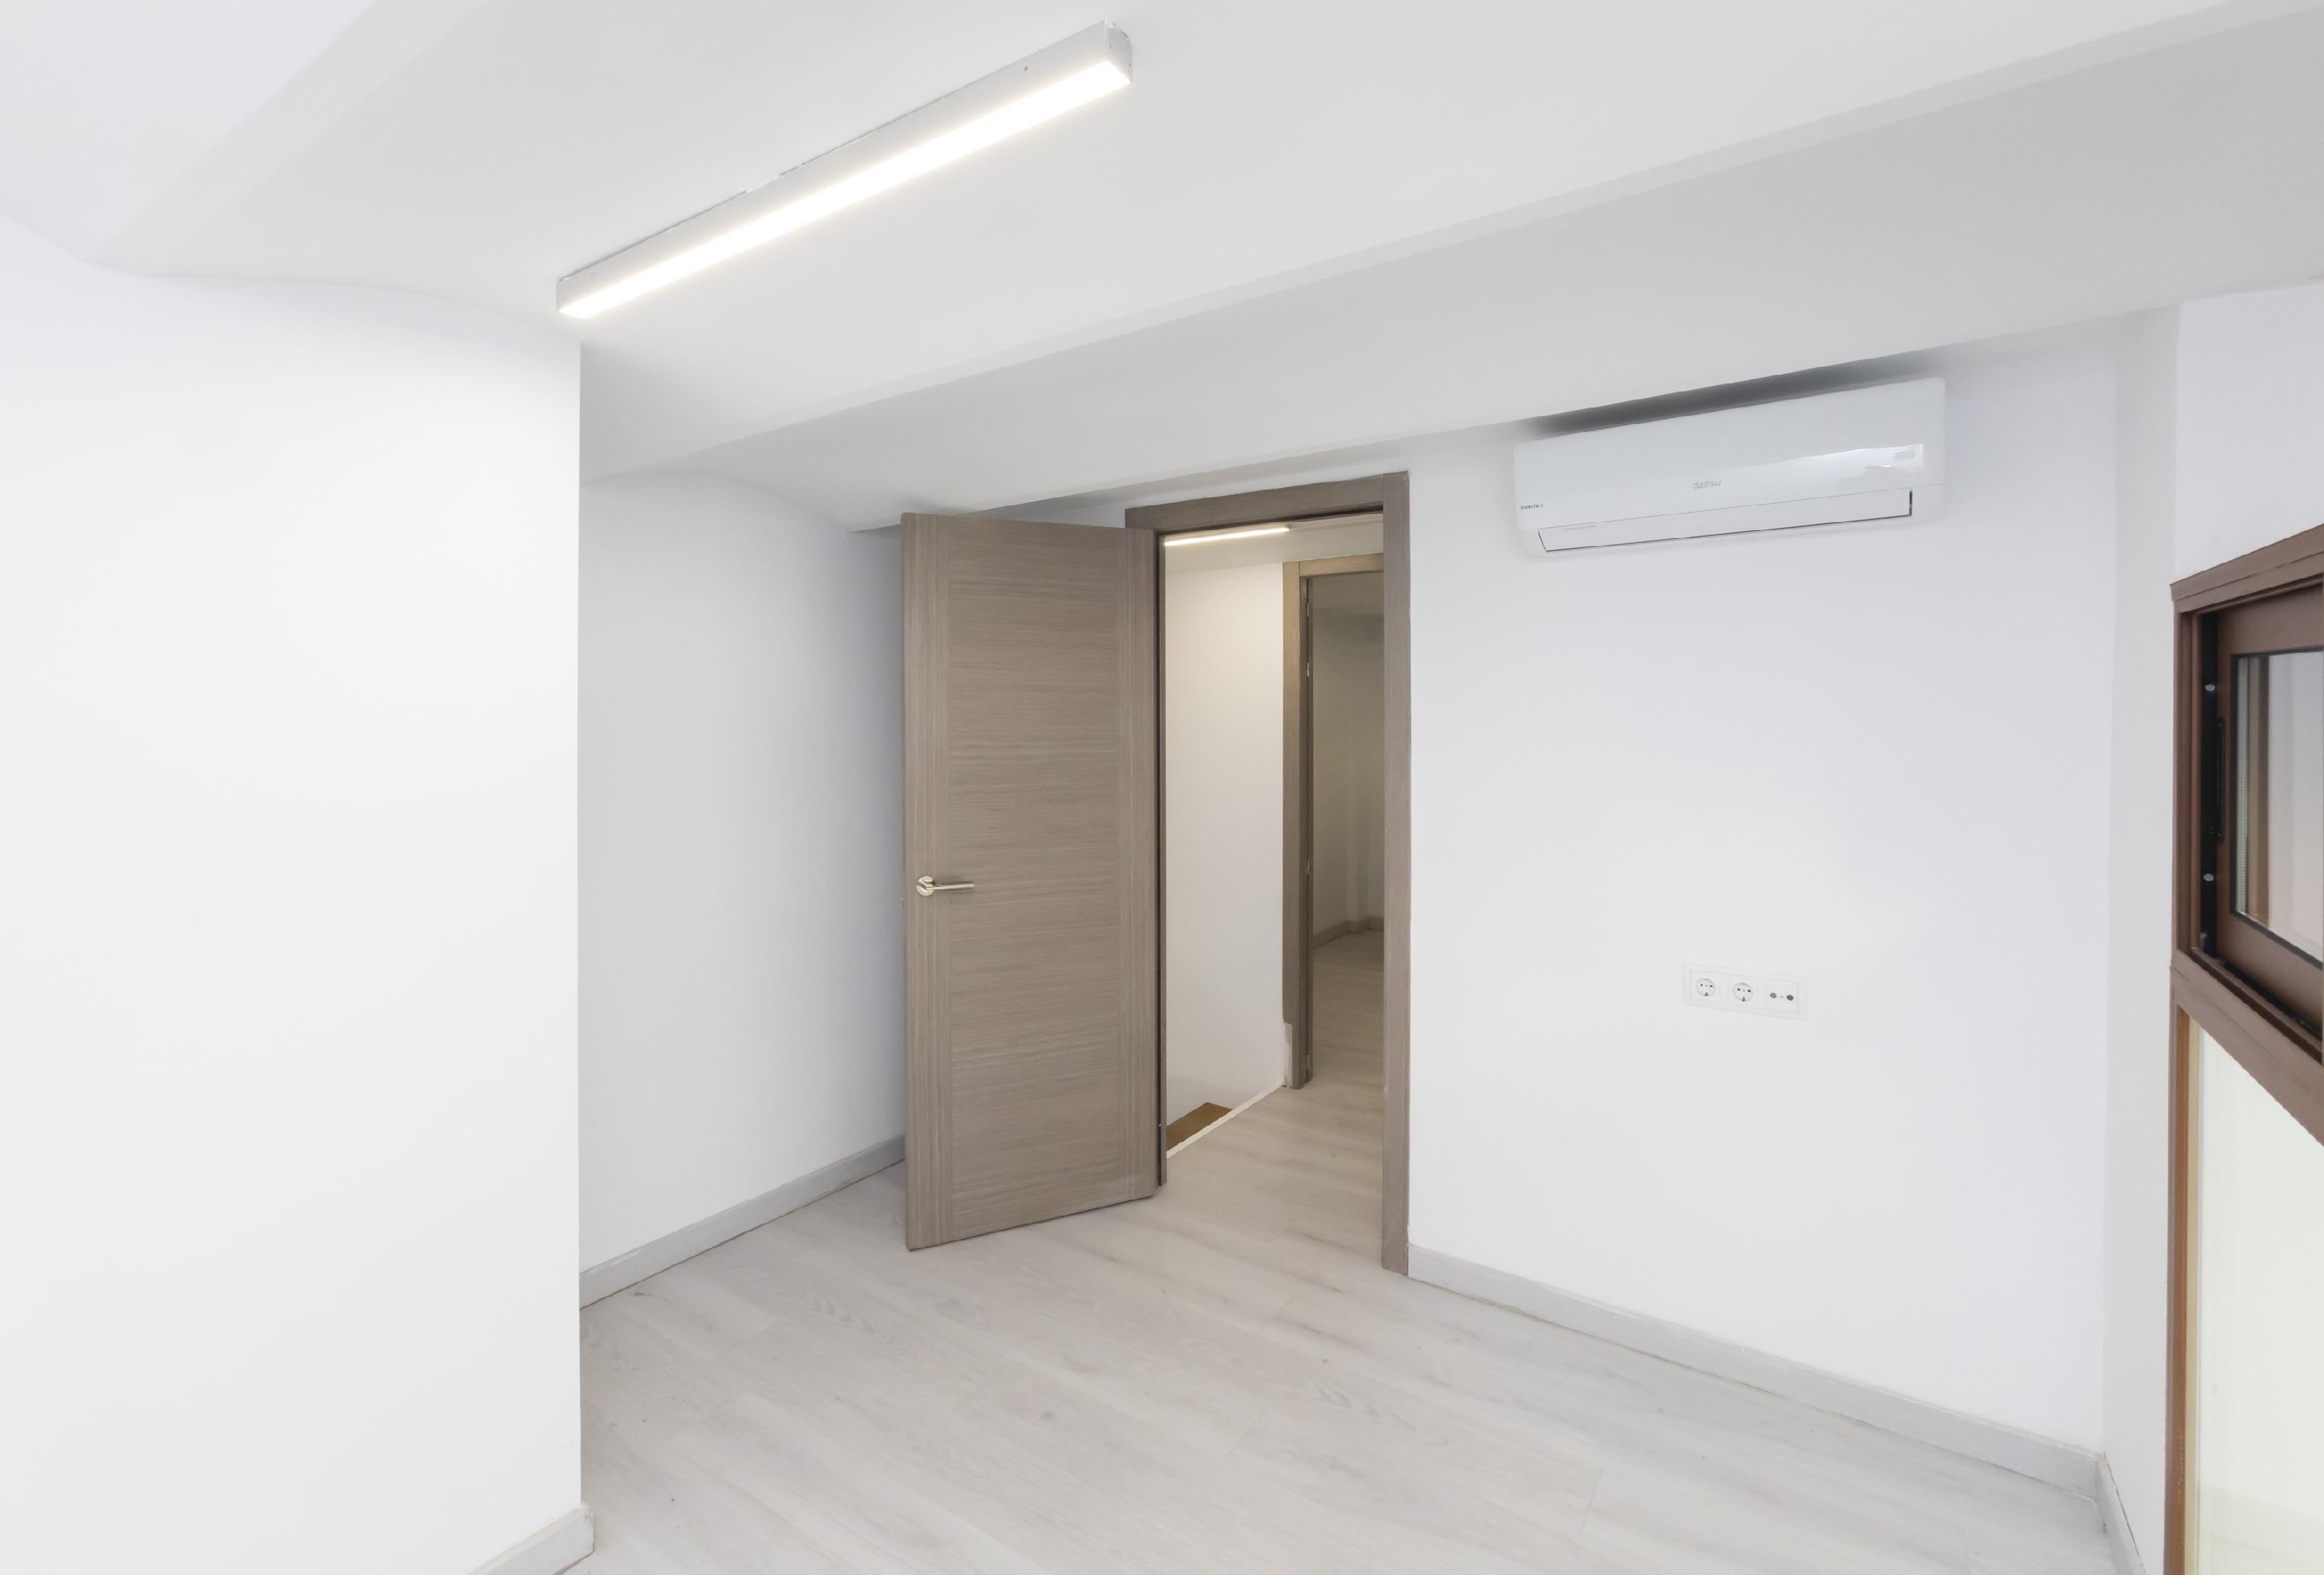 242978 Flat for sale in Gràcia, Camp Grassot and Gràcia Nova 9